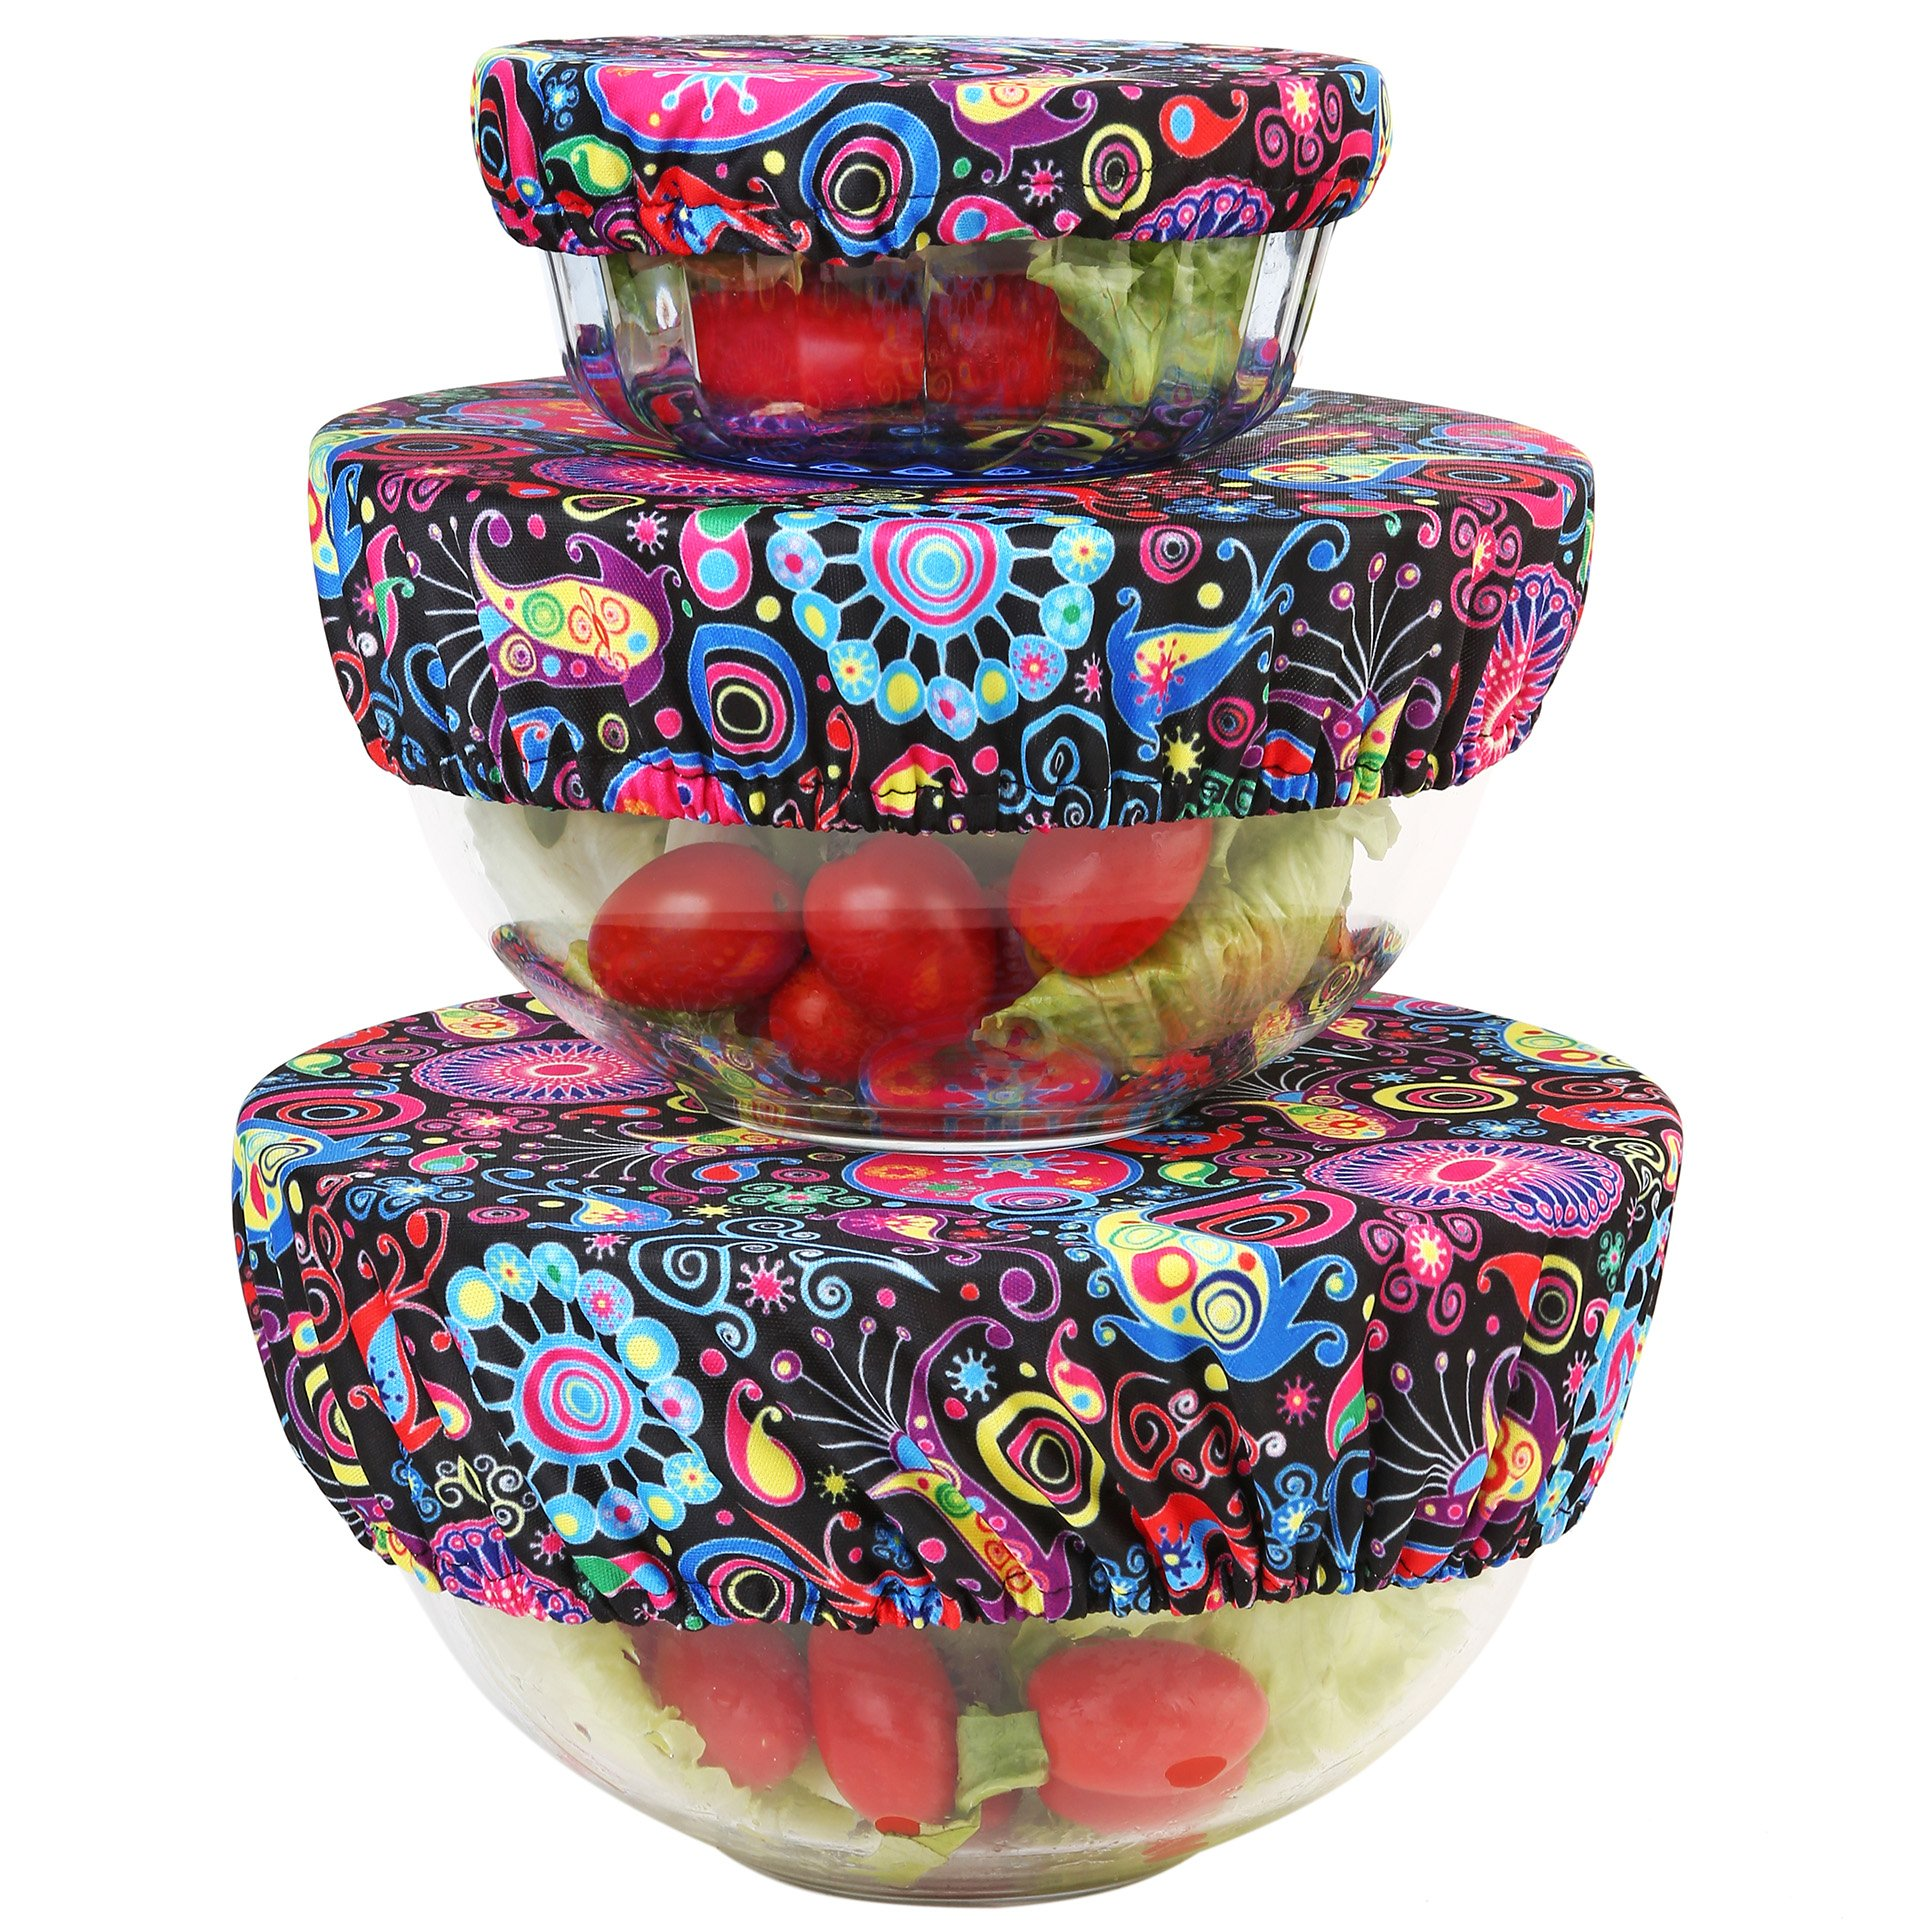 Wegreeco Reusable Bowl Covers - Set of 3,Bloom